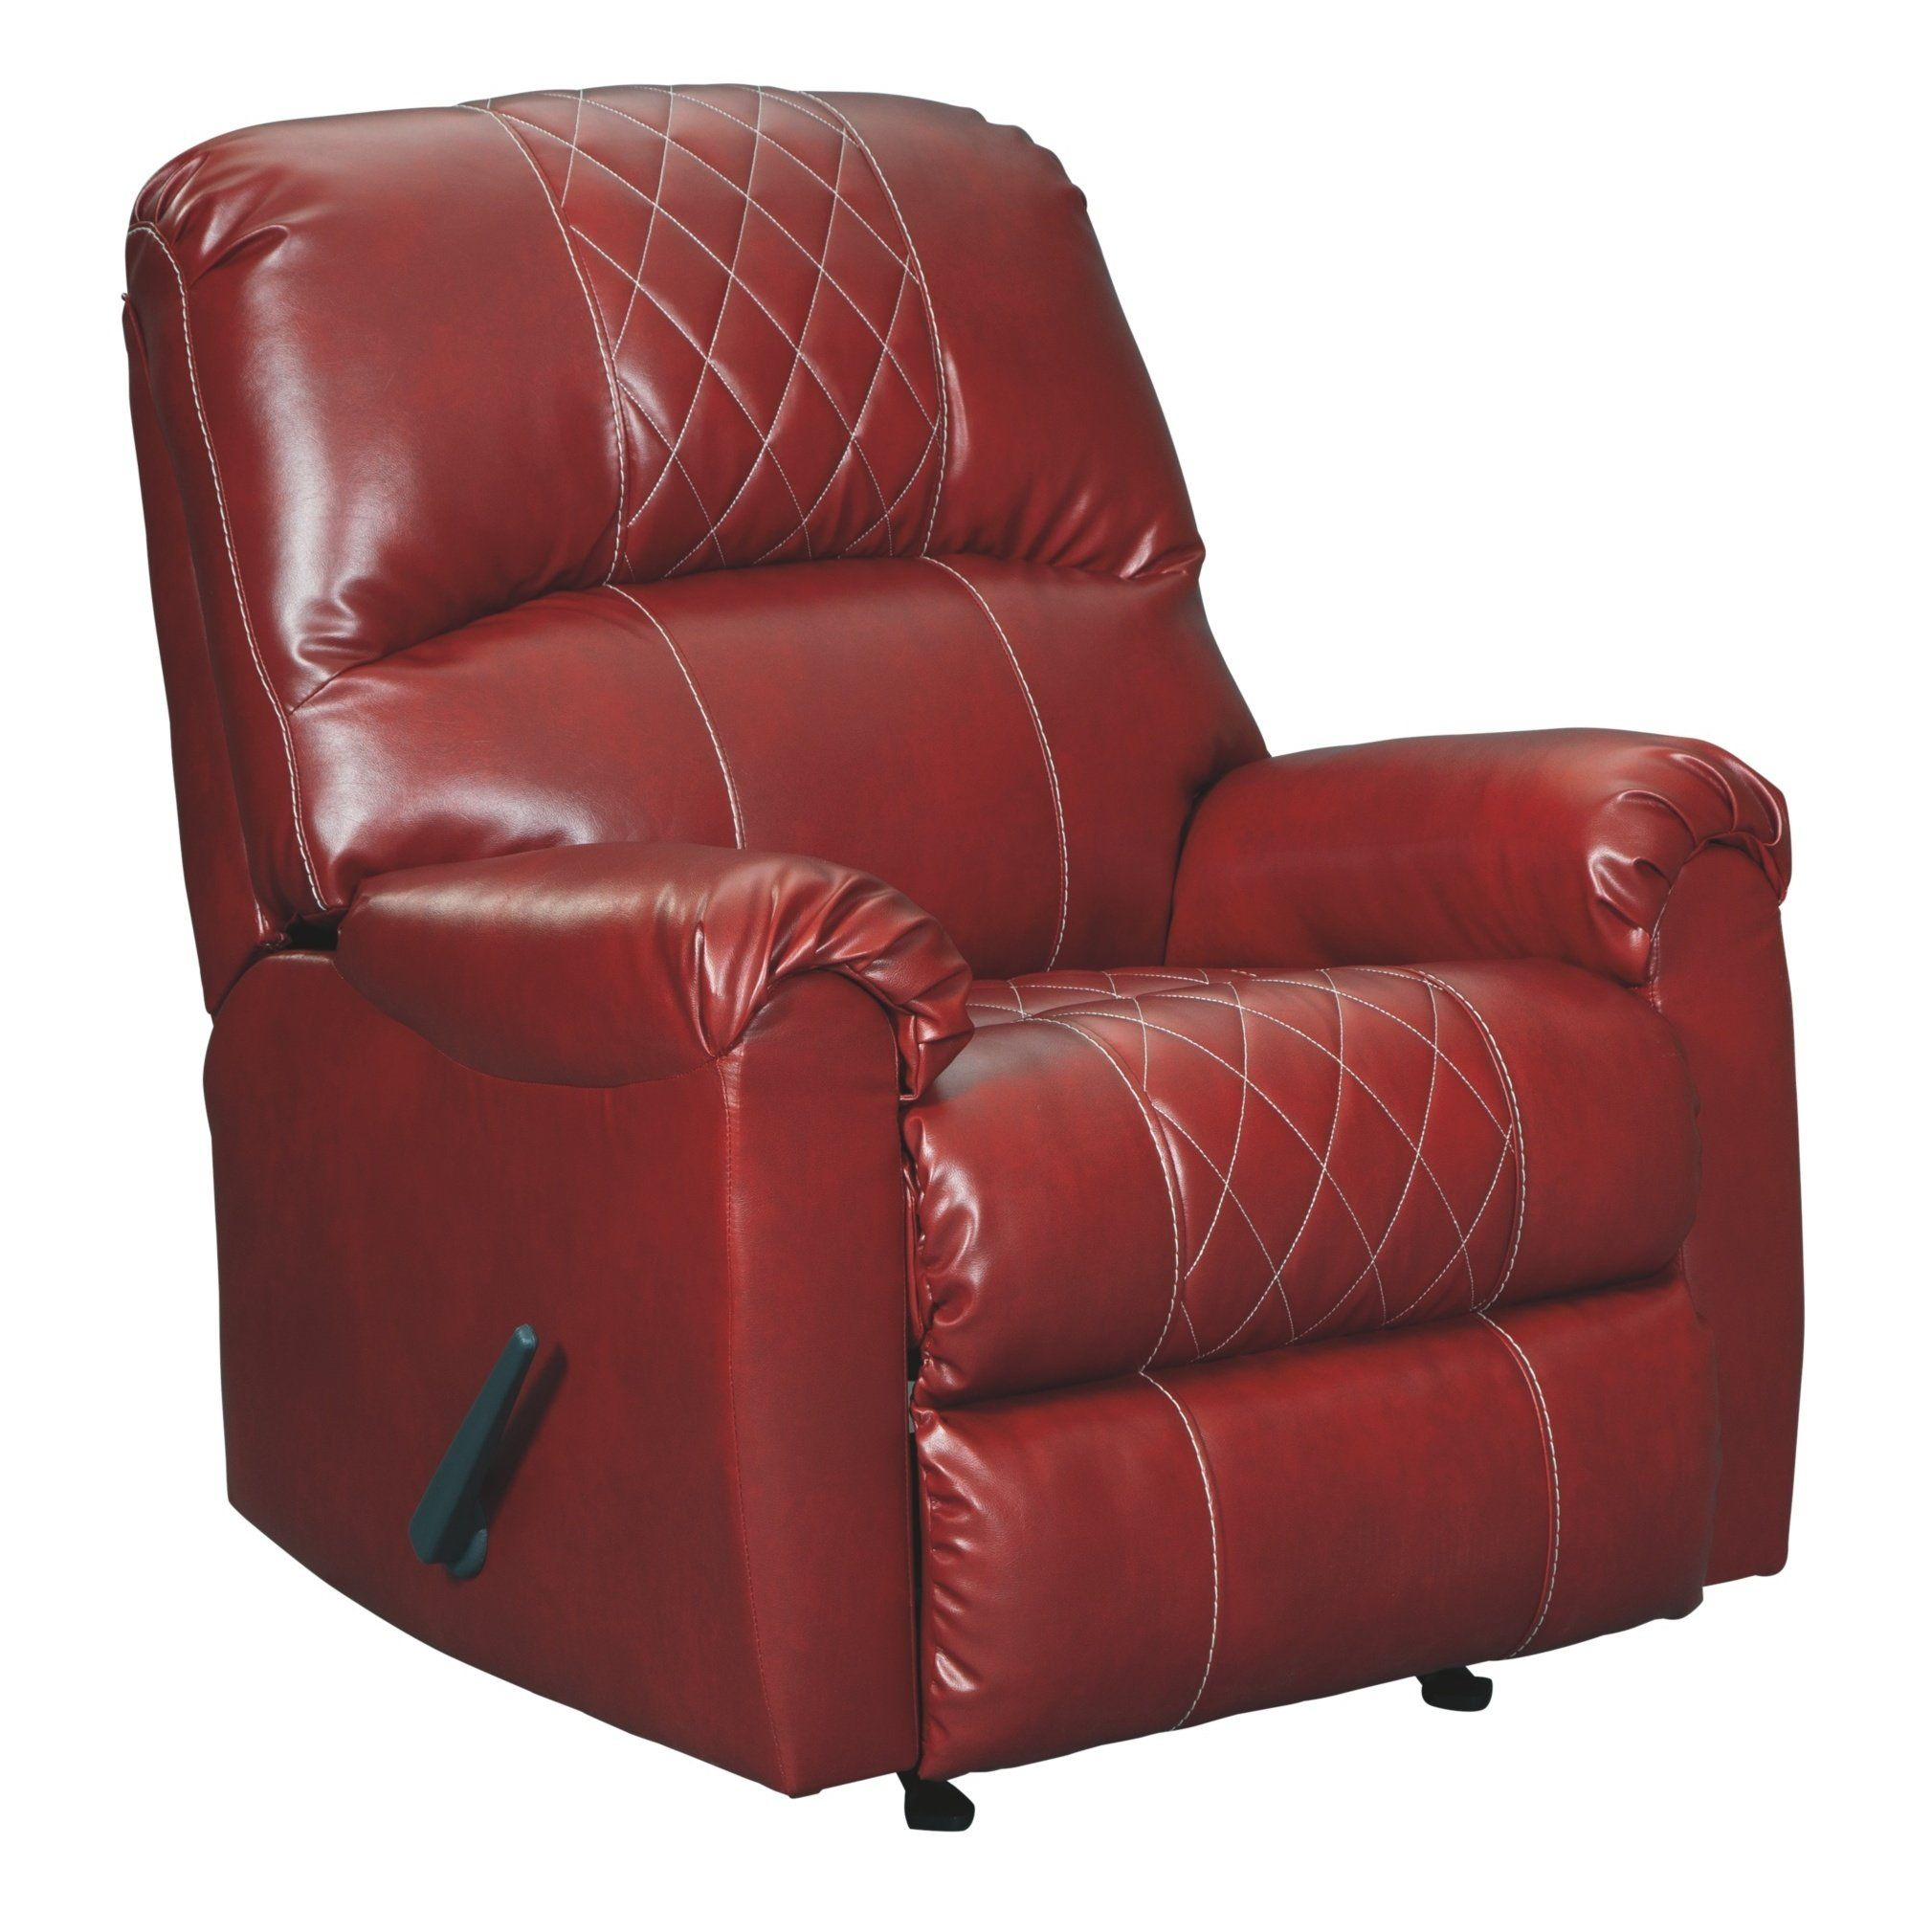 Best Signature Design By Ashley Betrillo Salsa Red Faux Leather Recliner Polyester Blend In 2019 400 x 300